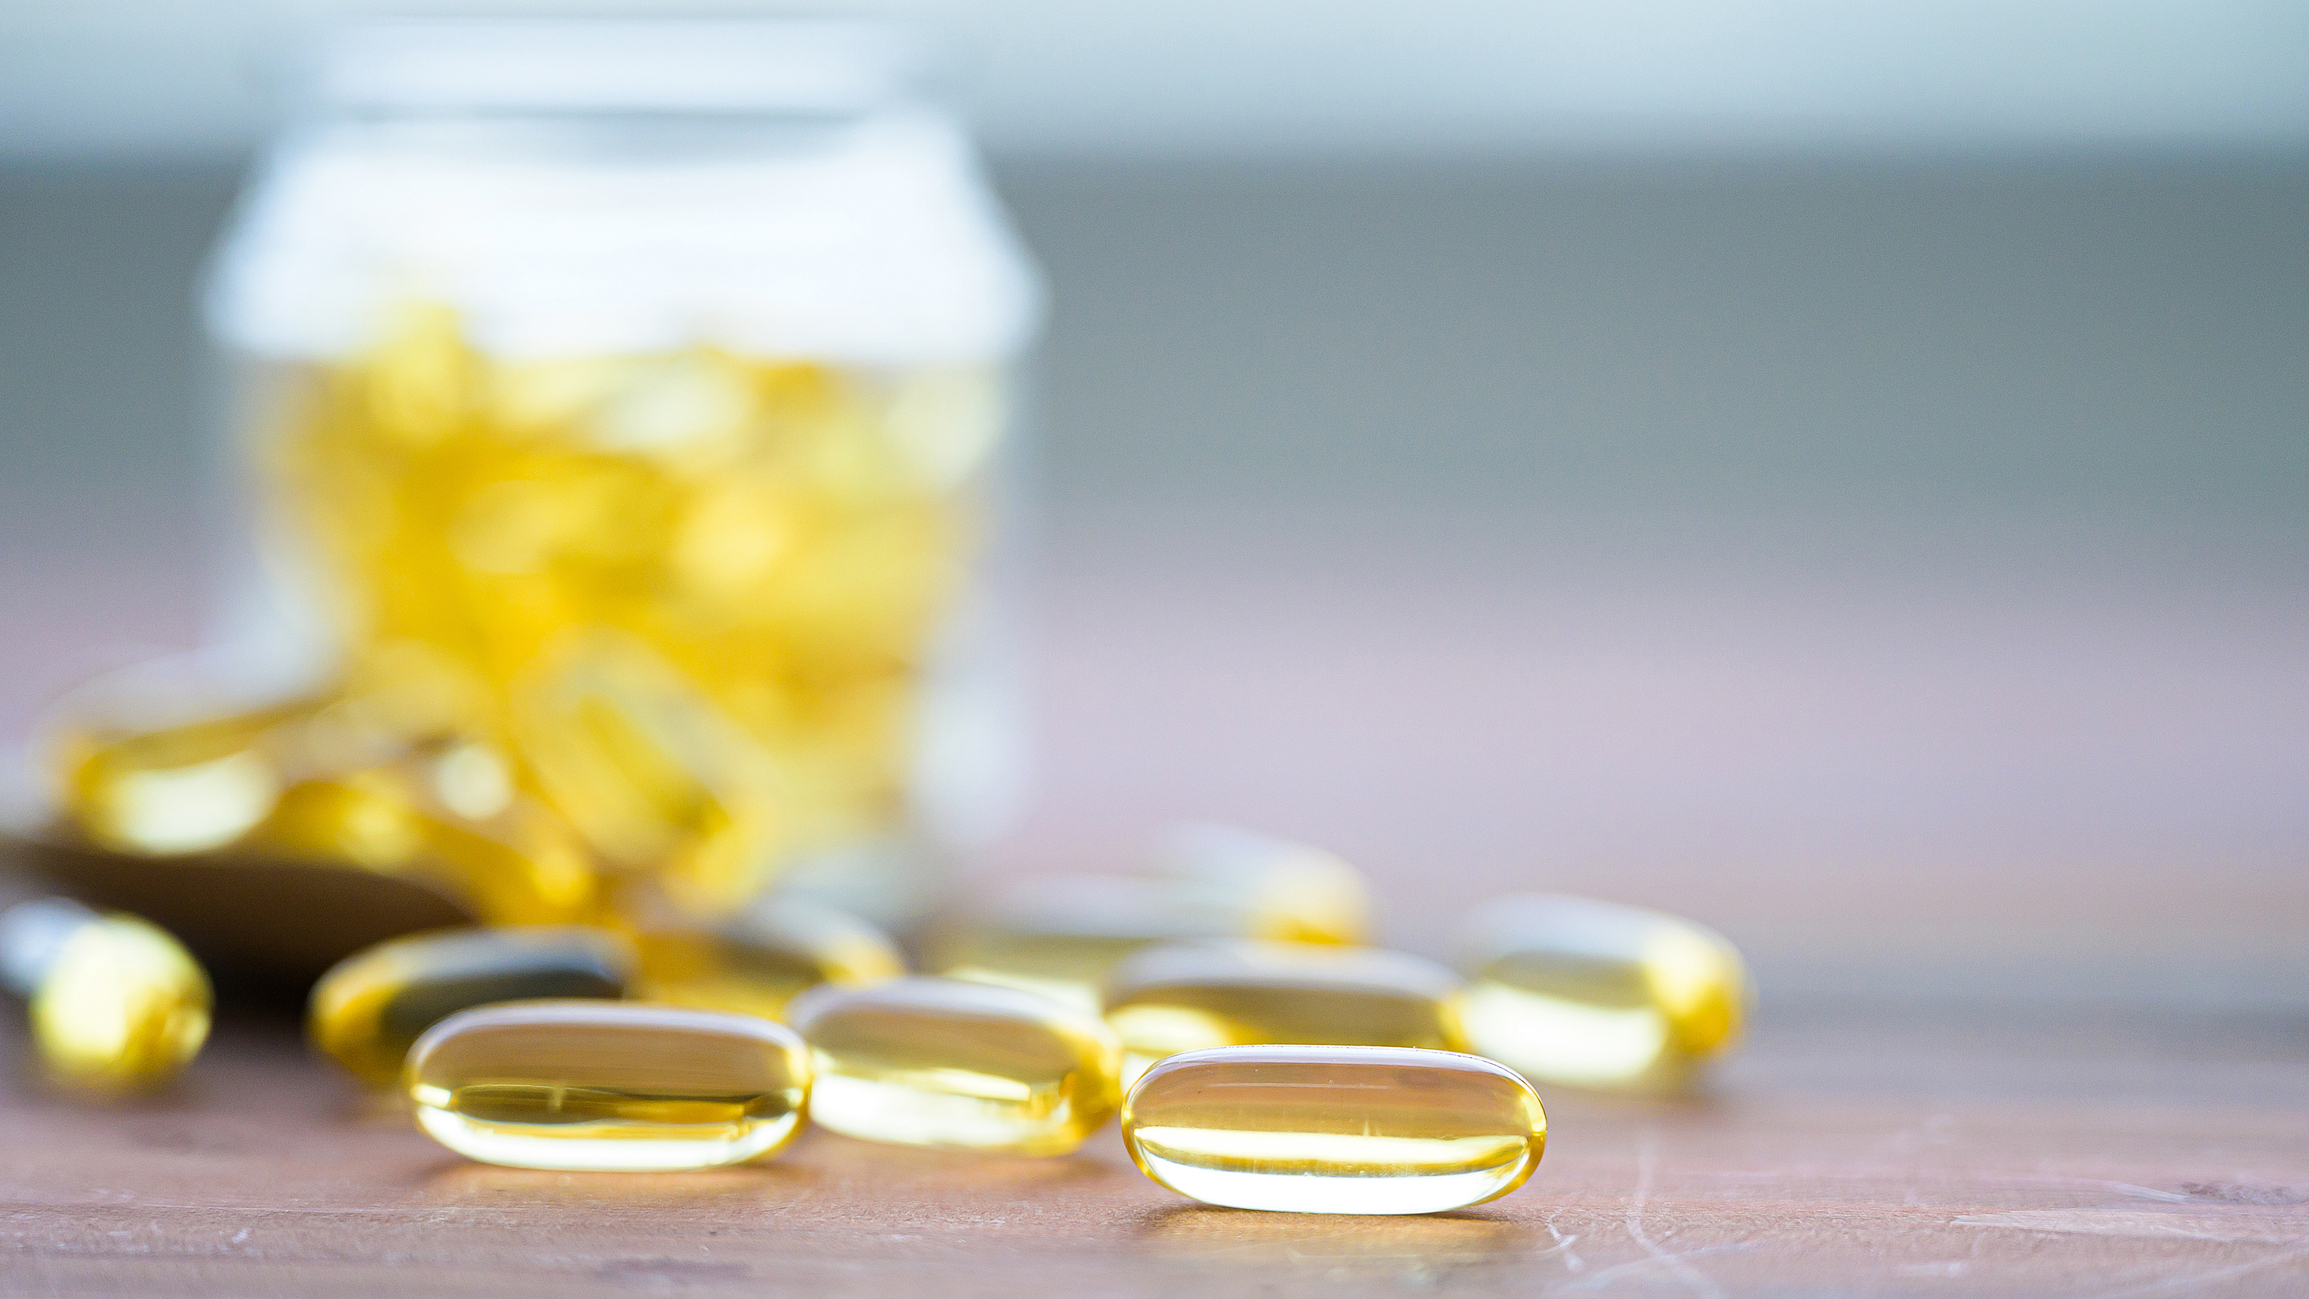 Extra cardioprotective effects of omega-3s discovered